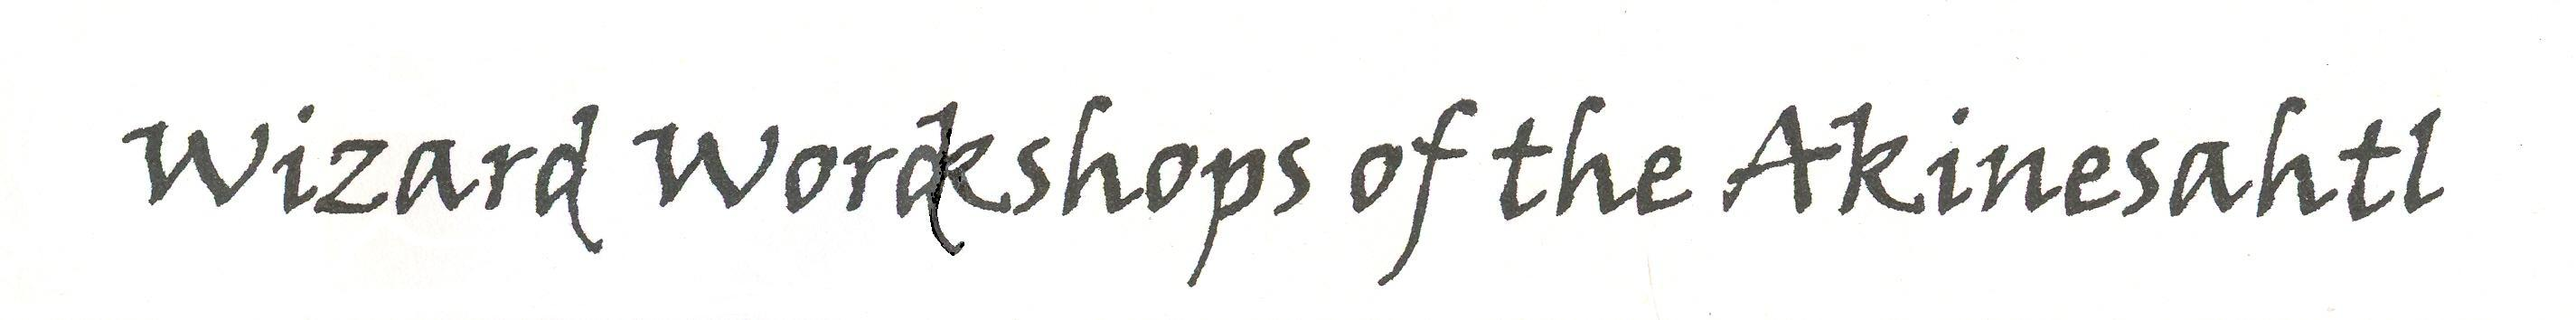 Logo of the Wizard Wordshops of the Akinesahtl. (montana rockhounding, rock collecting, rockhounding in montana, collecting locations, mineral collecting, fossils, fossil collecting, gold panning rockhounding, montana, montana agate)